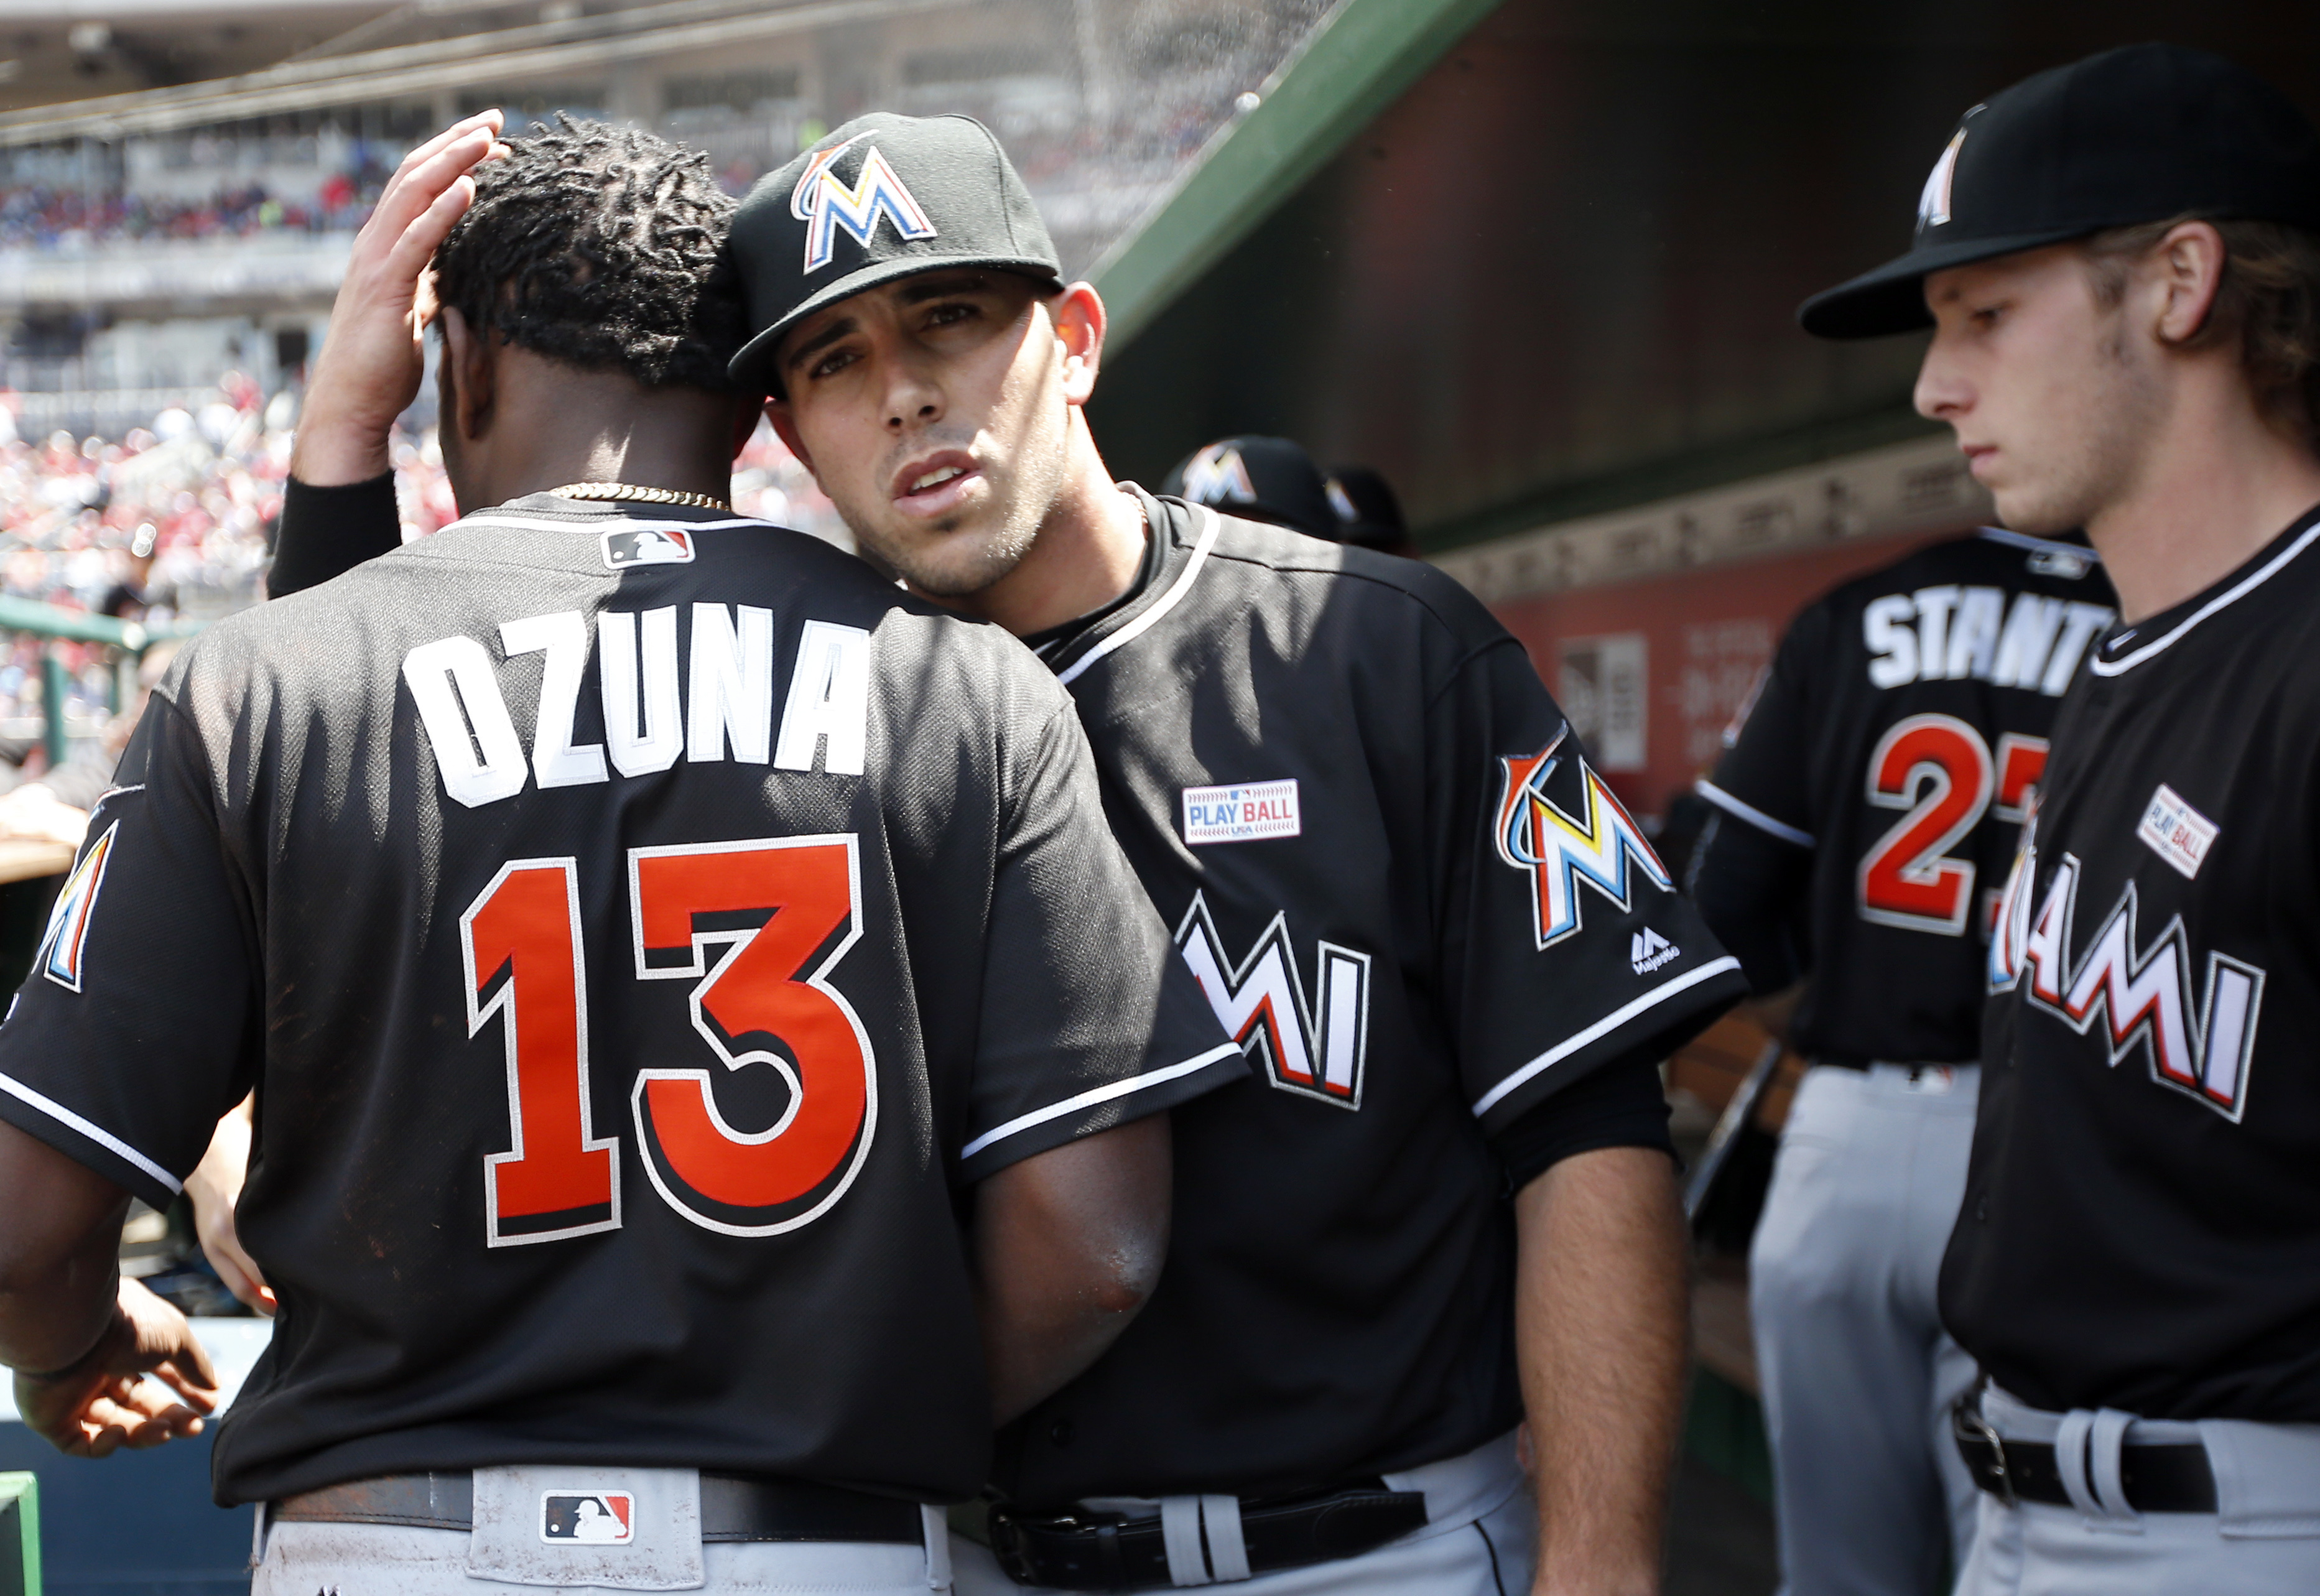 Miami Marlins starting pitcher Jose Fernandez, center, hugs center fielder Marcell Ozuna after his collision with Giancarlo Stanton as Adam Conley, right, stands by during the fourth inning of a baseball game against the Washington Nationals at Nationals